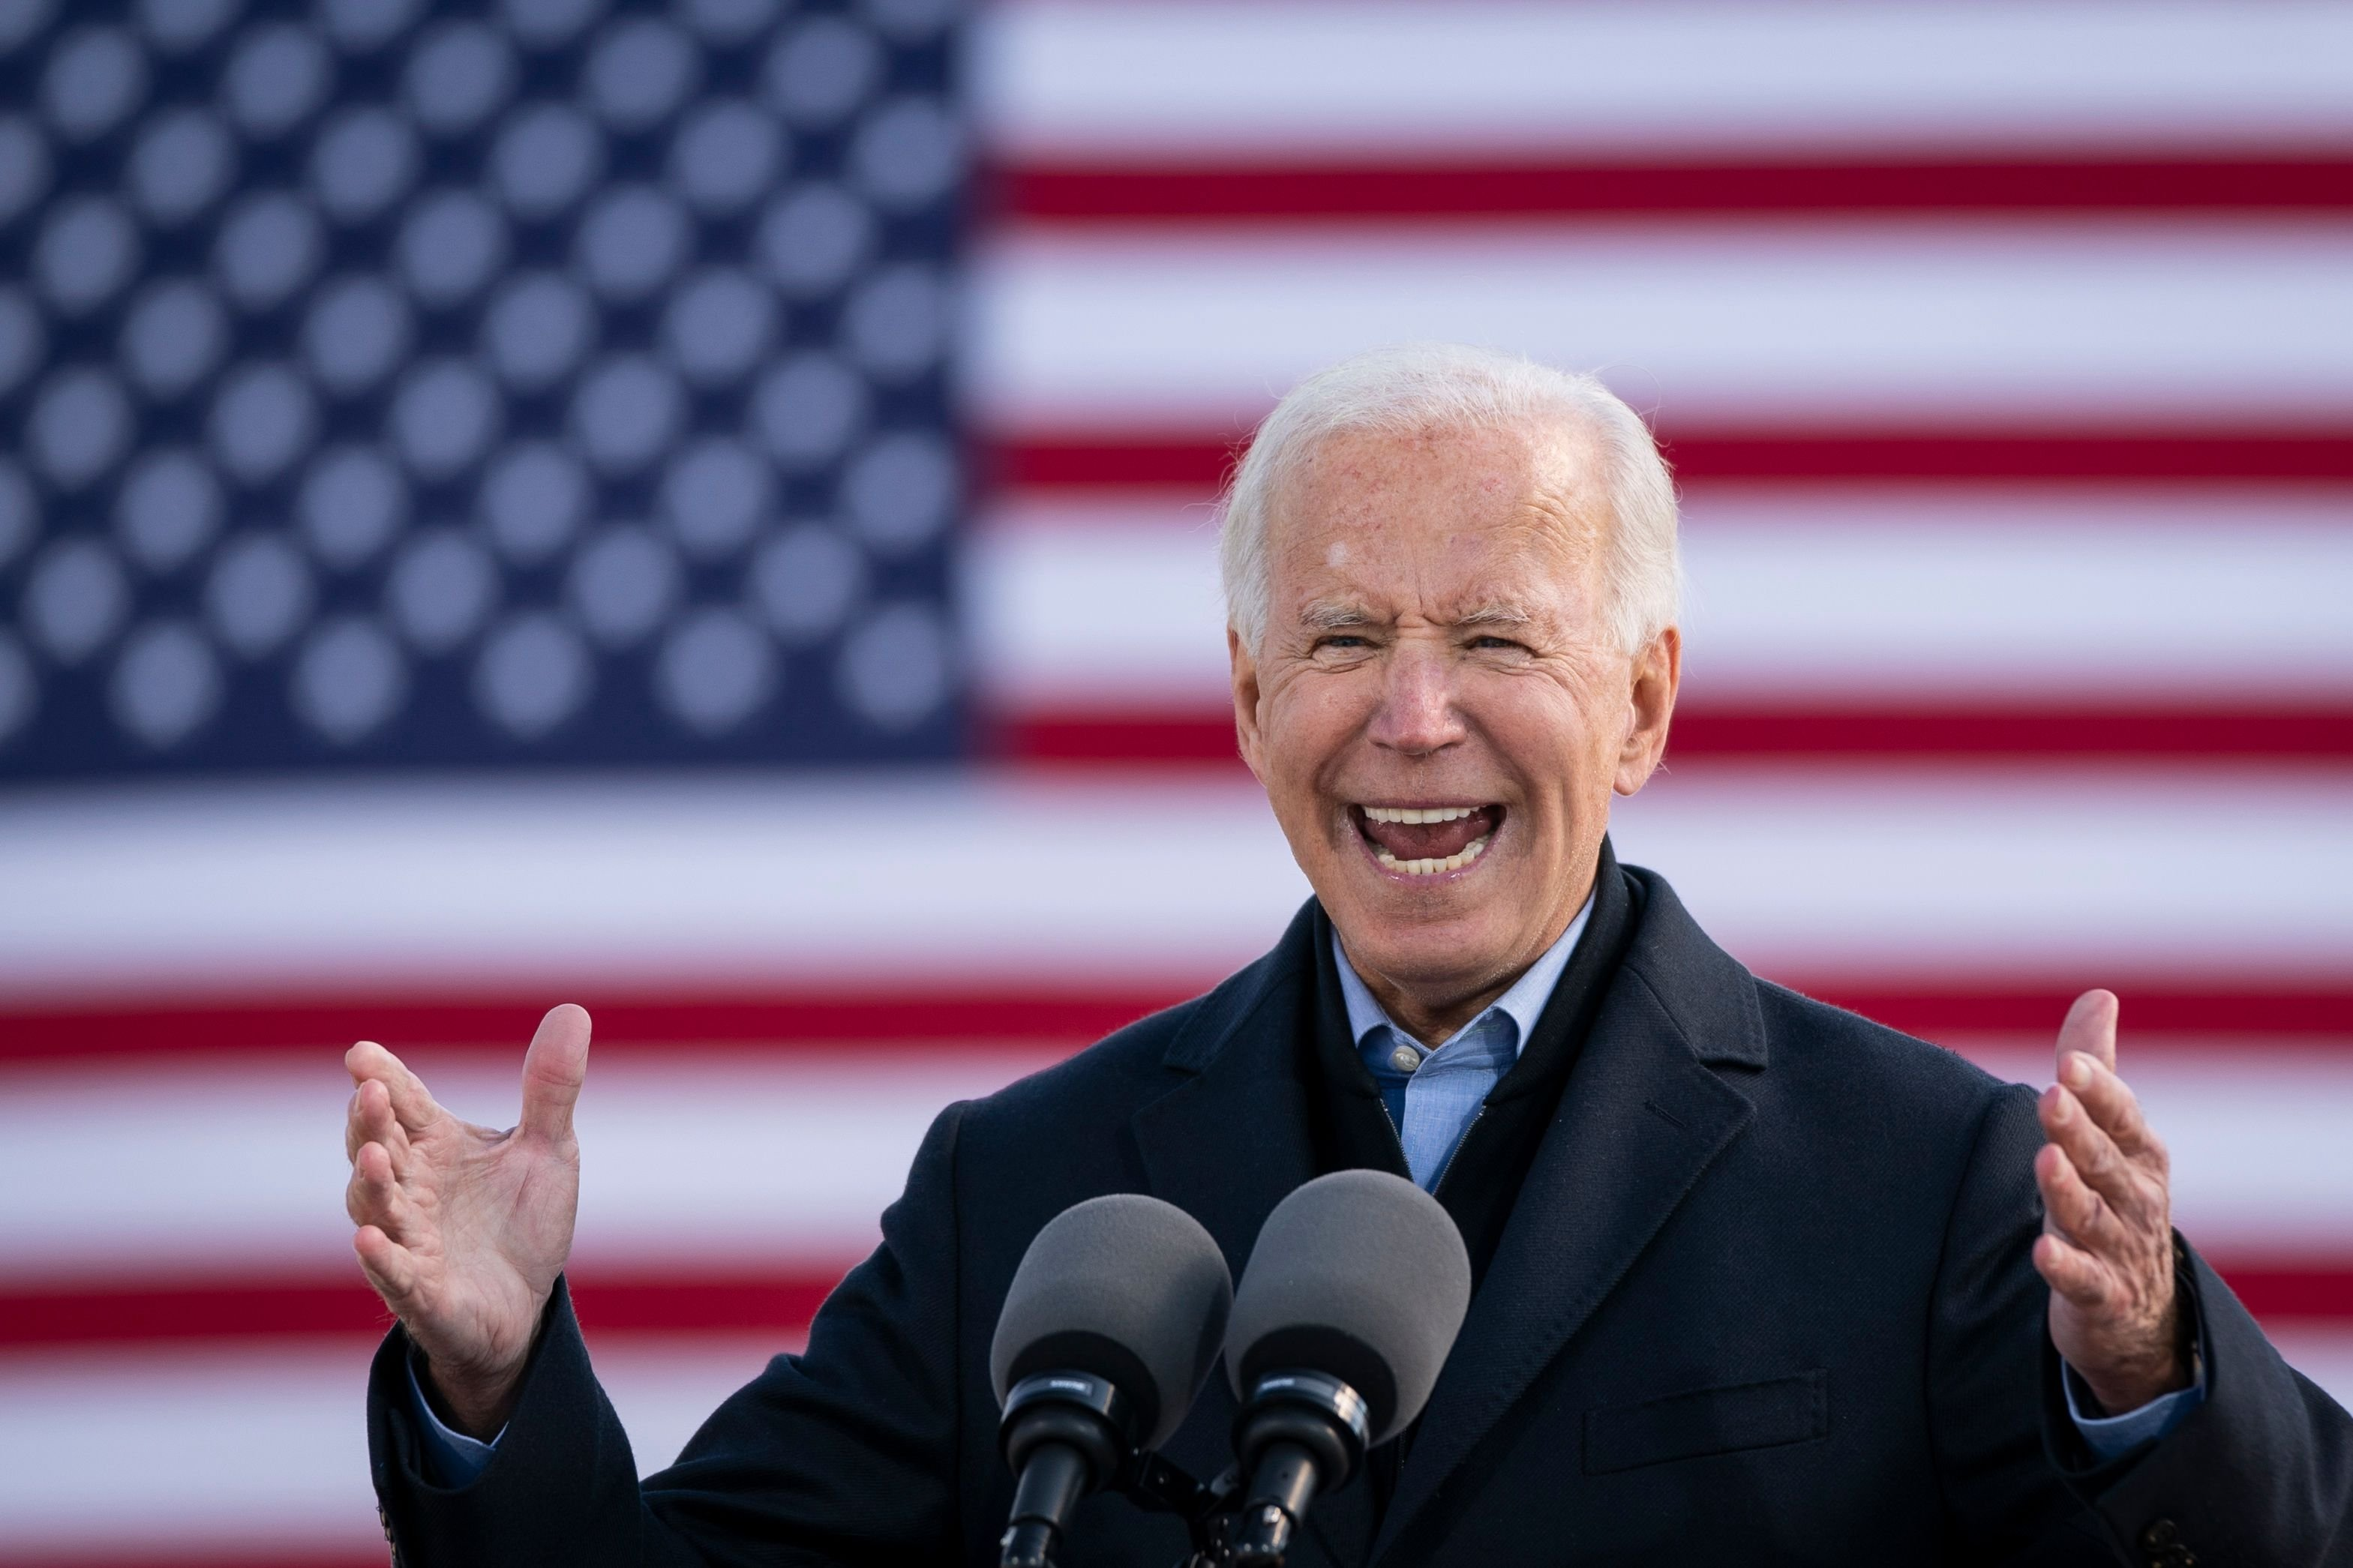 Joe Biden speaks during a drive-in campaign rally at the Iowa State Fairgrounds on October 30, 2020 | Getty Images